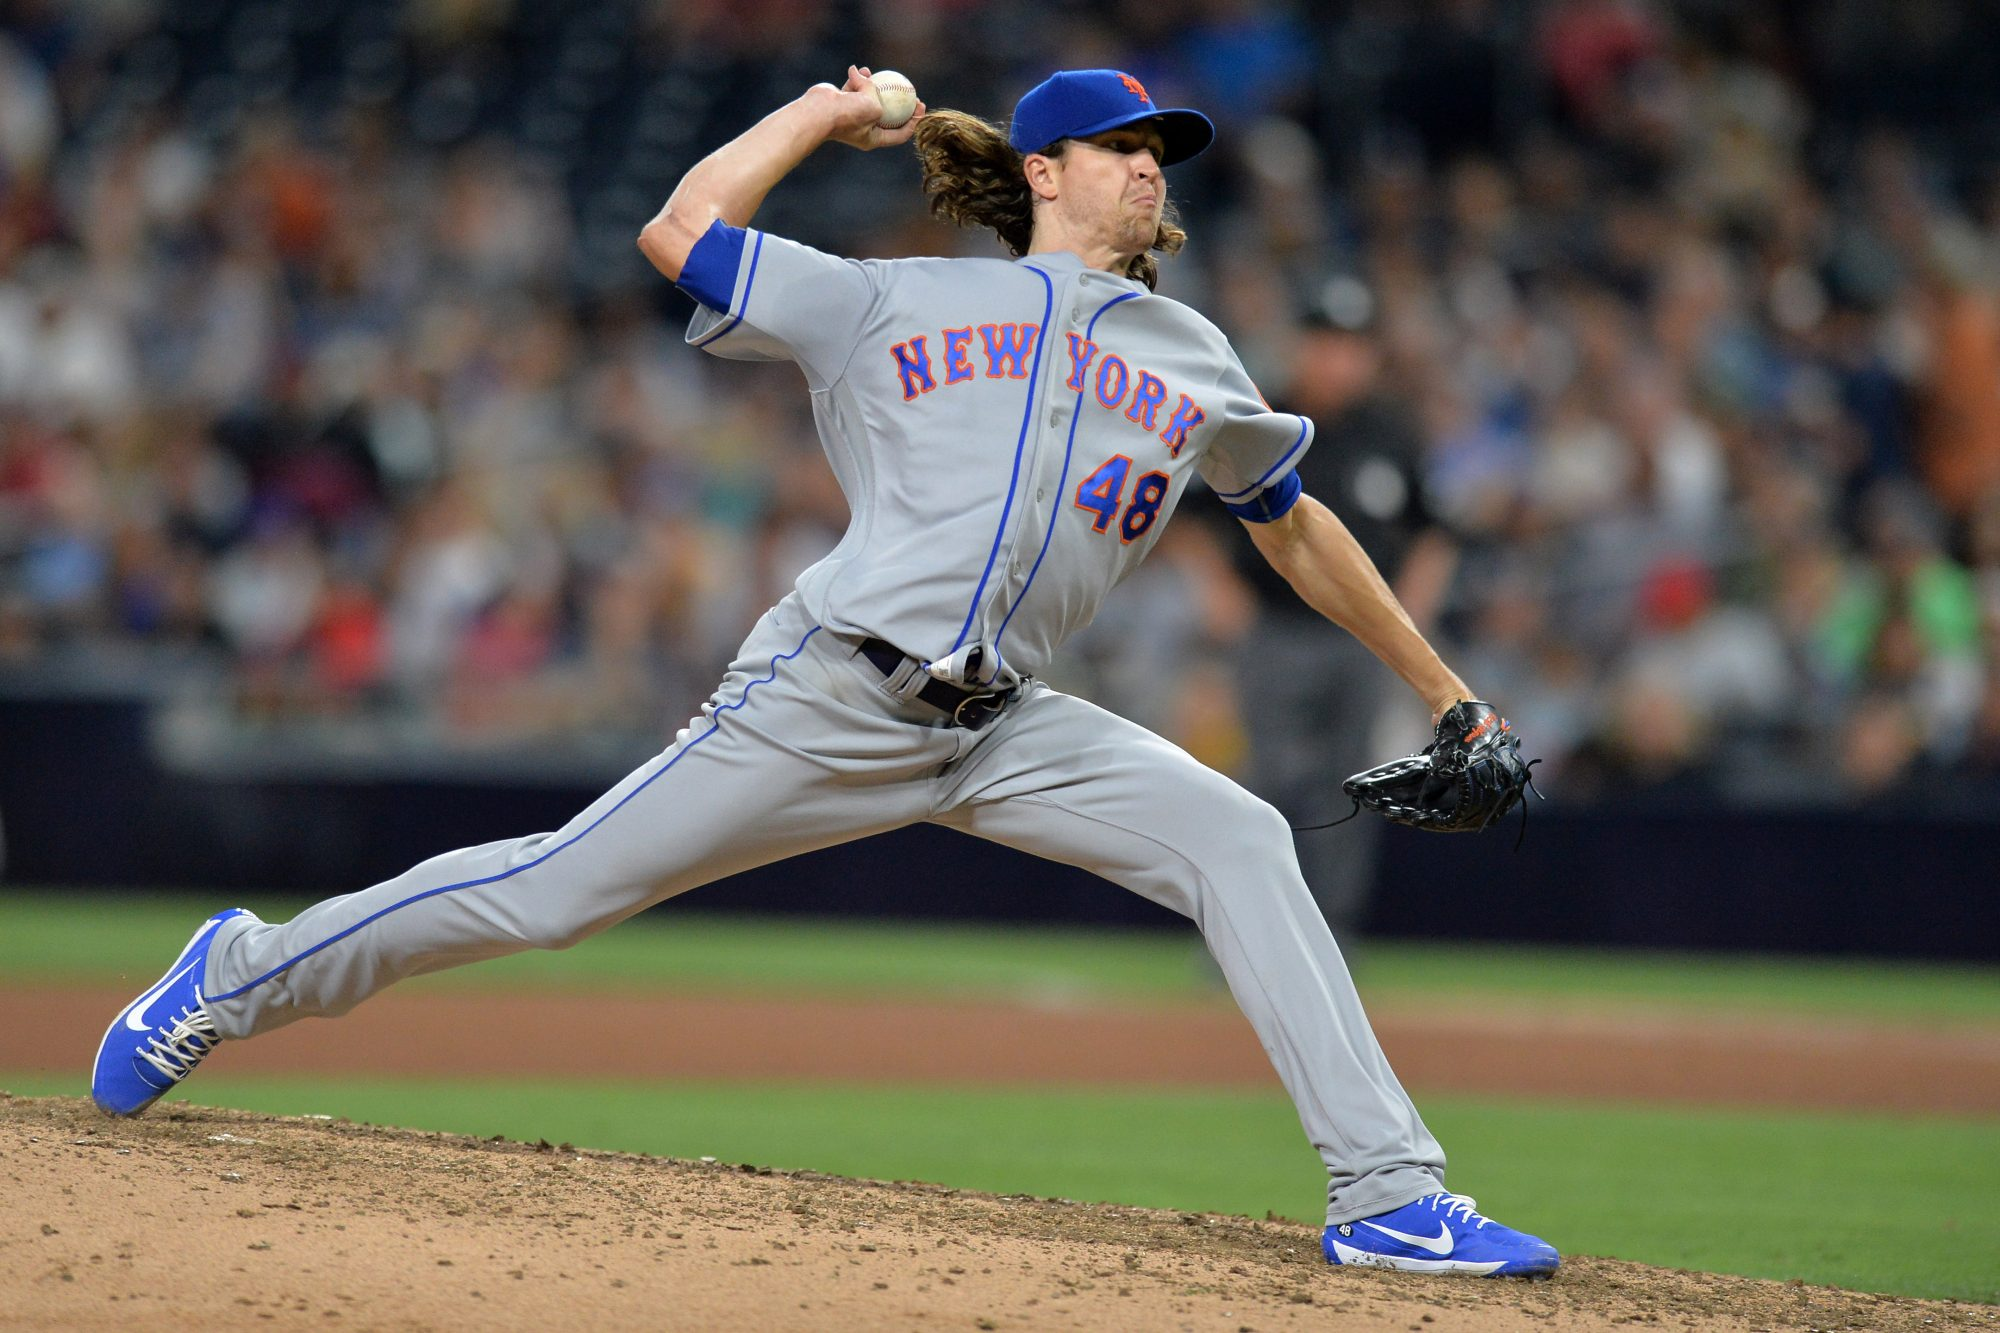 New York Mets: Jacob deGrom Leads Mets to 5-3 Victory over San Diego